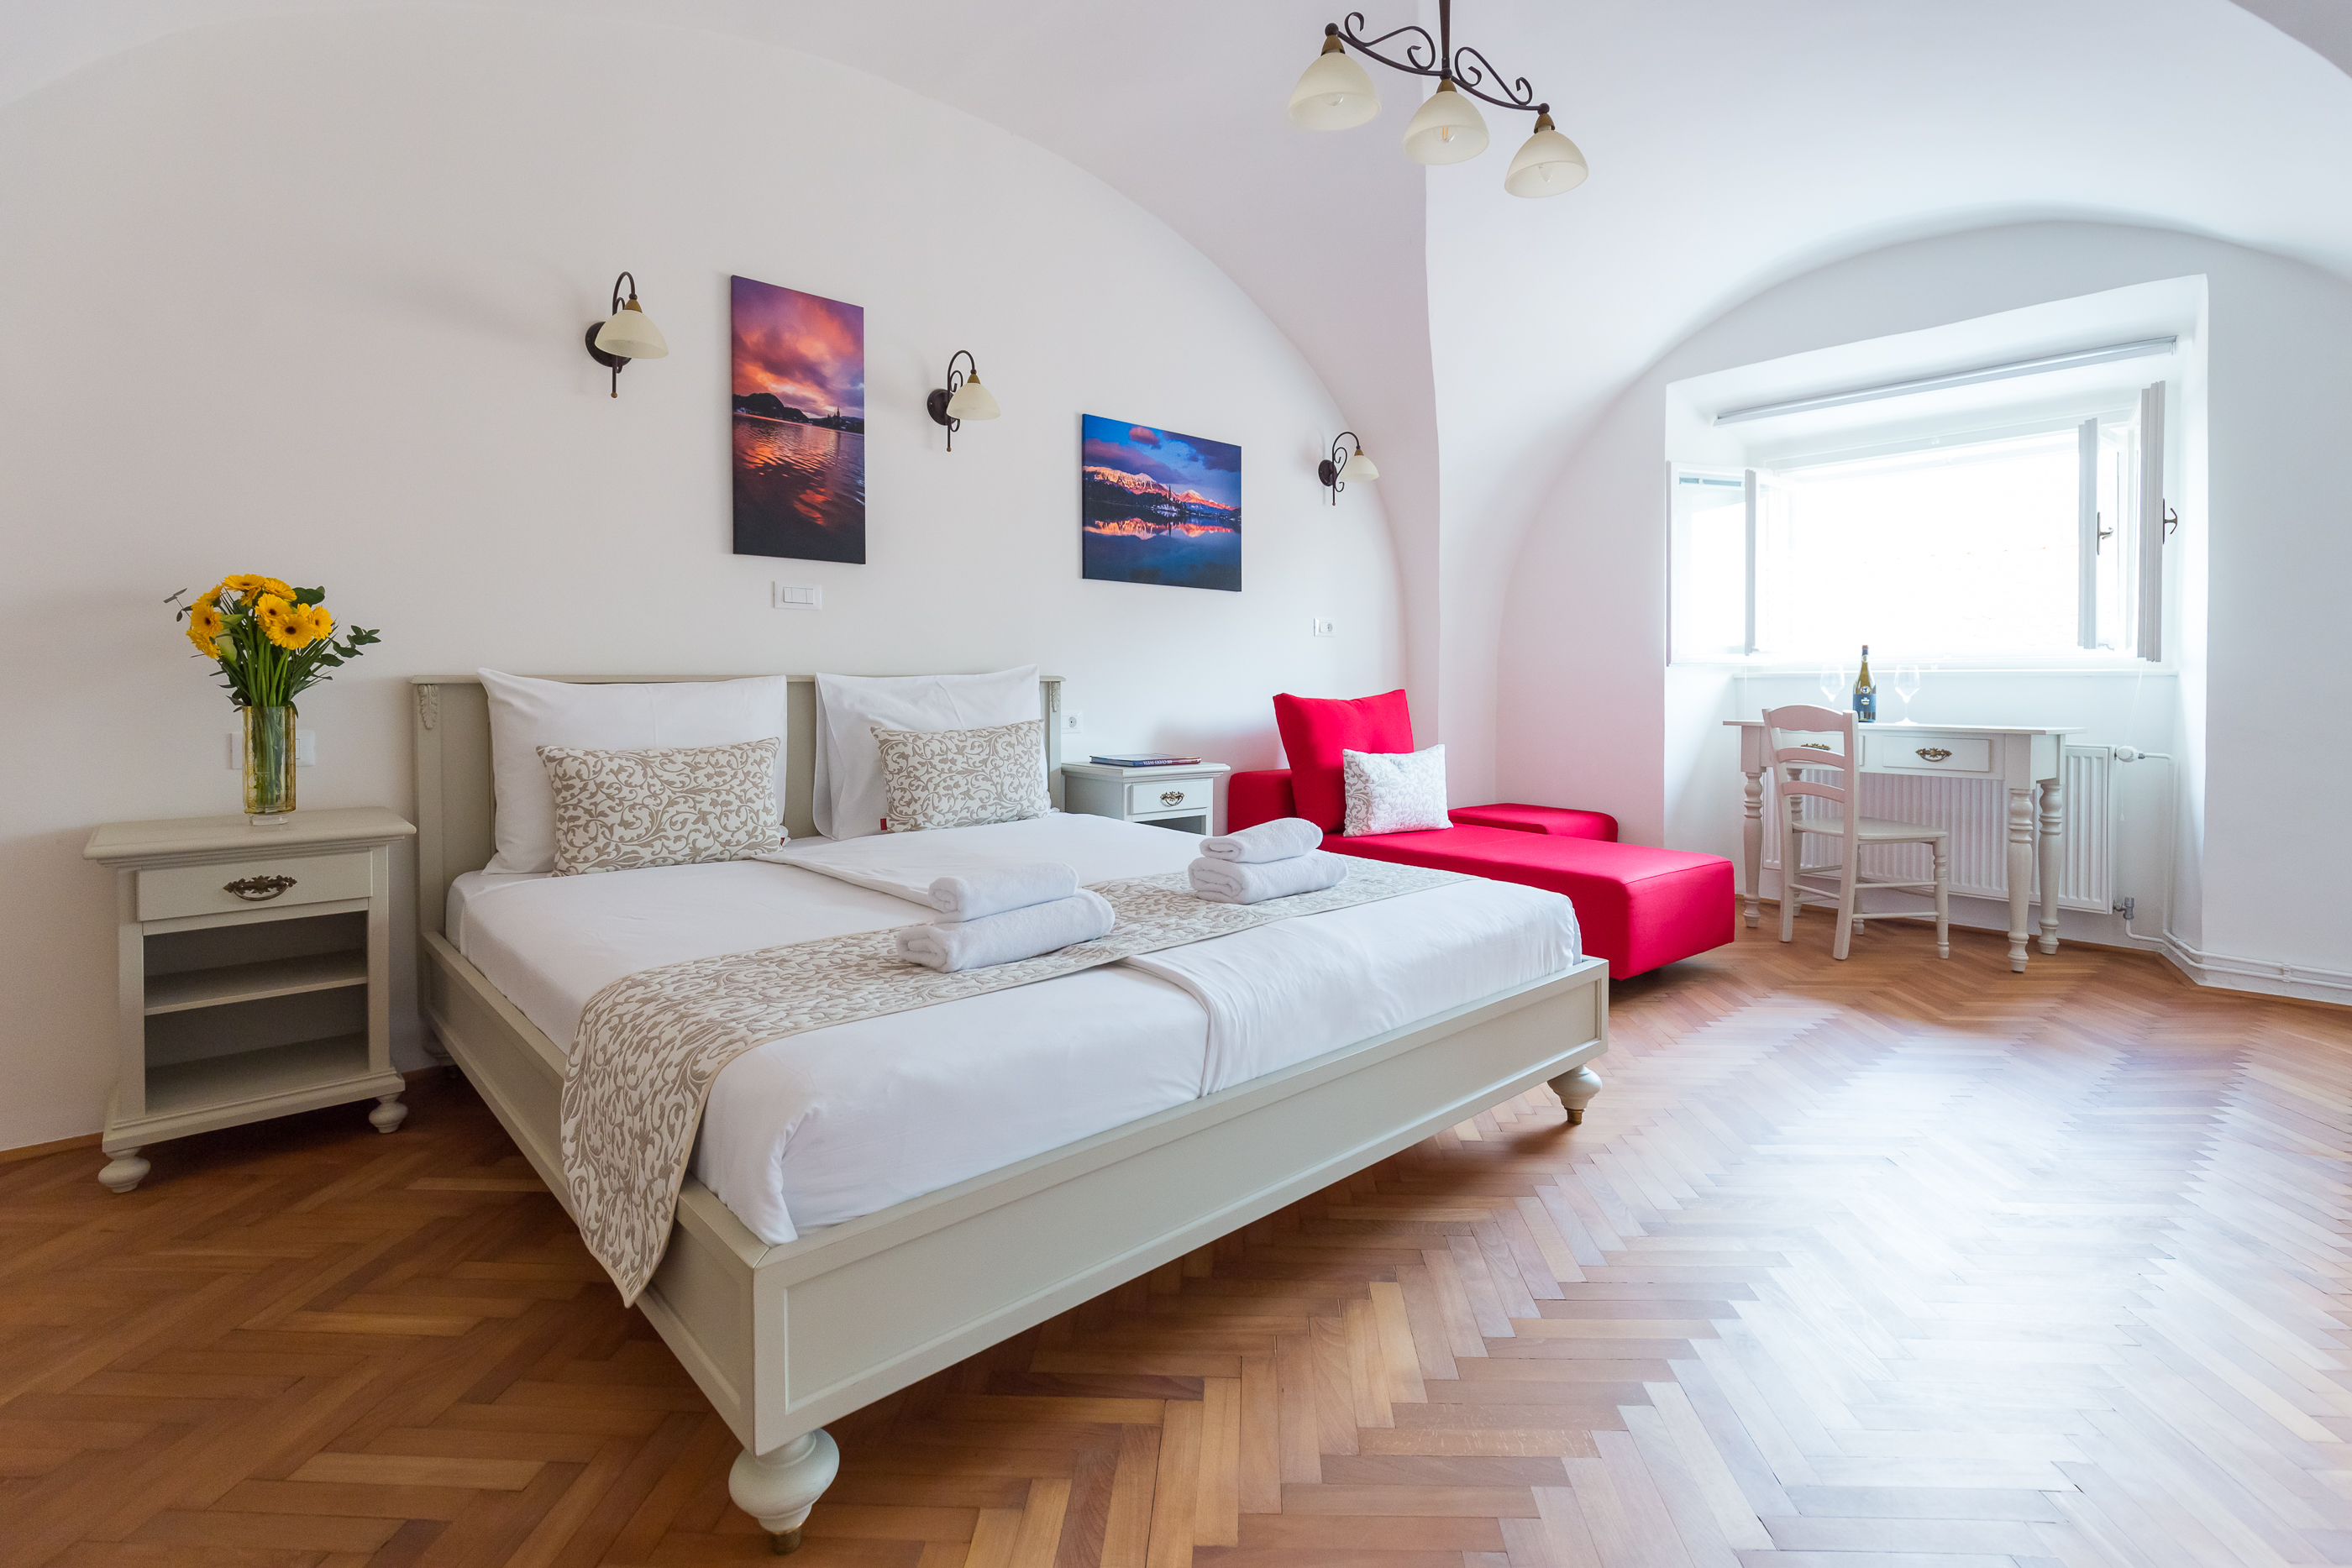 1 Bedroom And Living Room Apartment The Castle View No 3 Barbo Palace Apartments